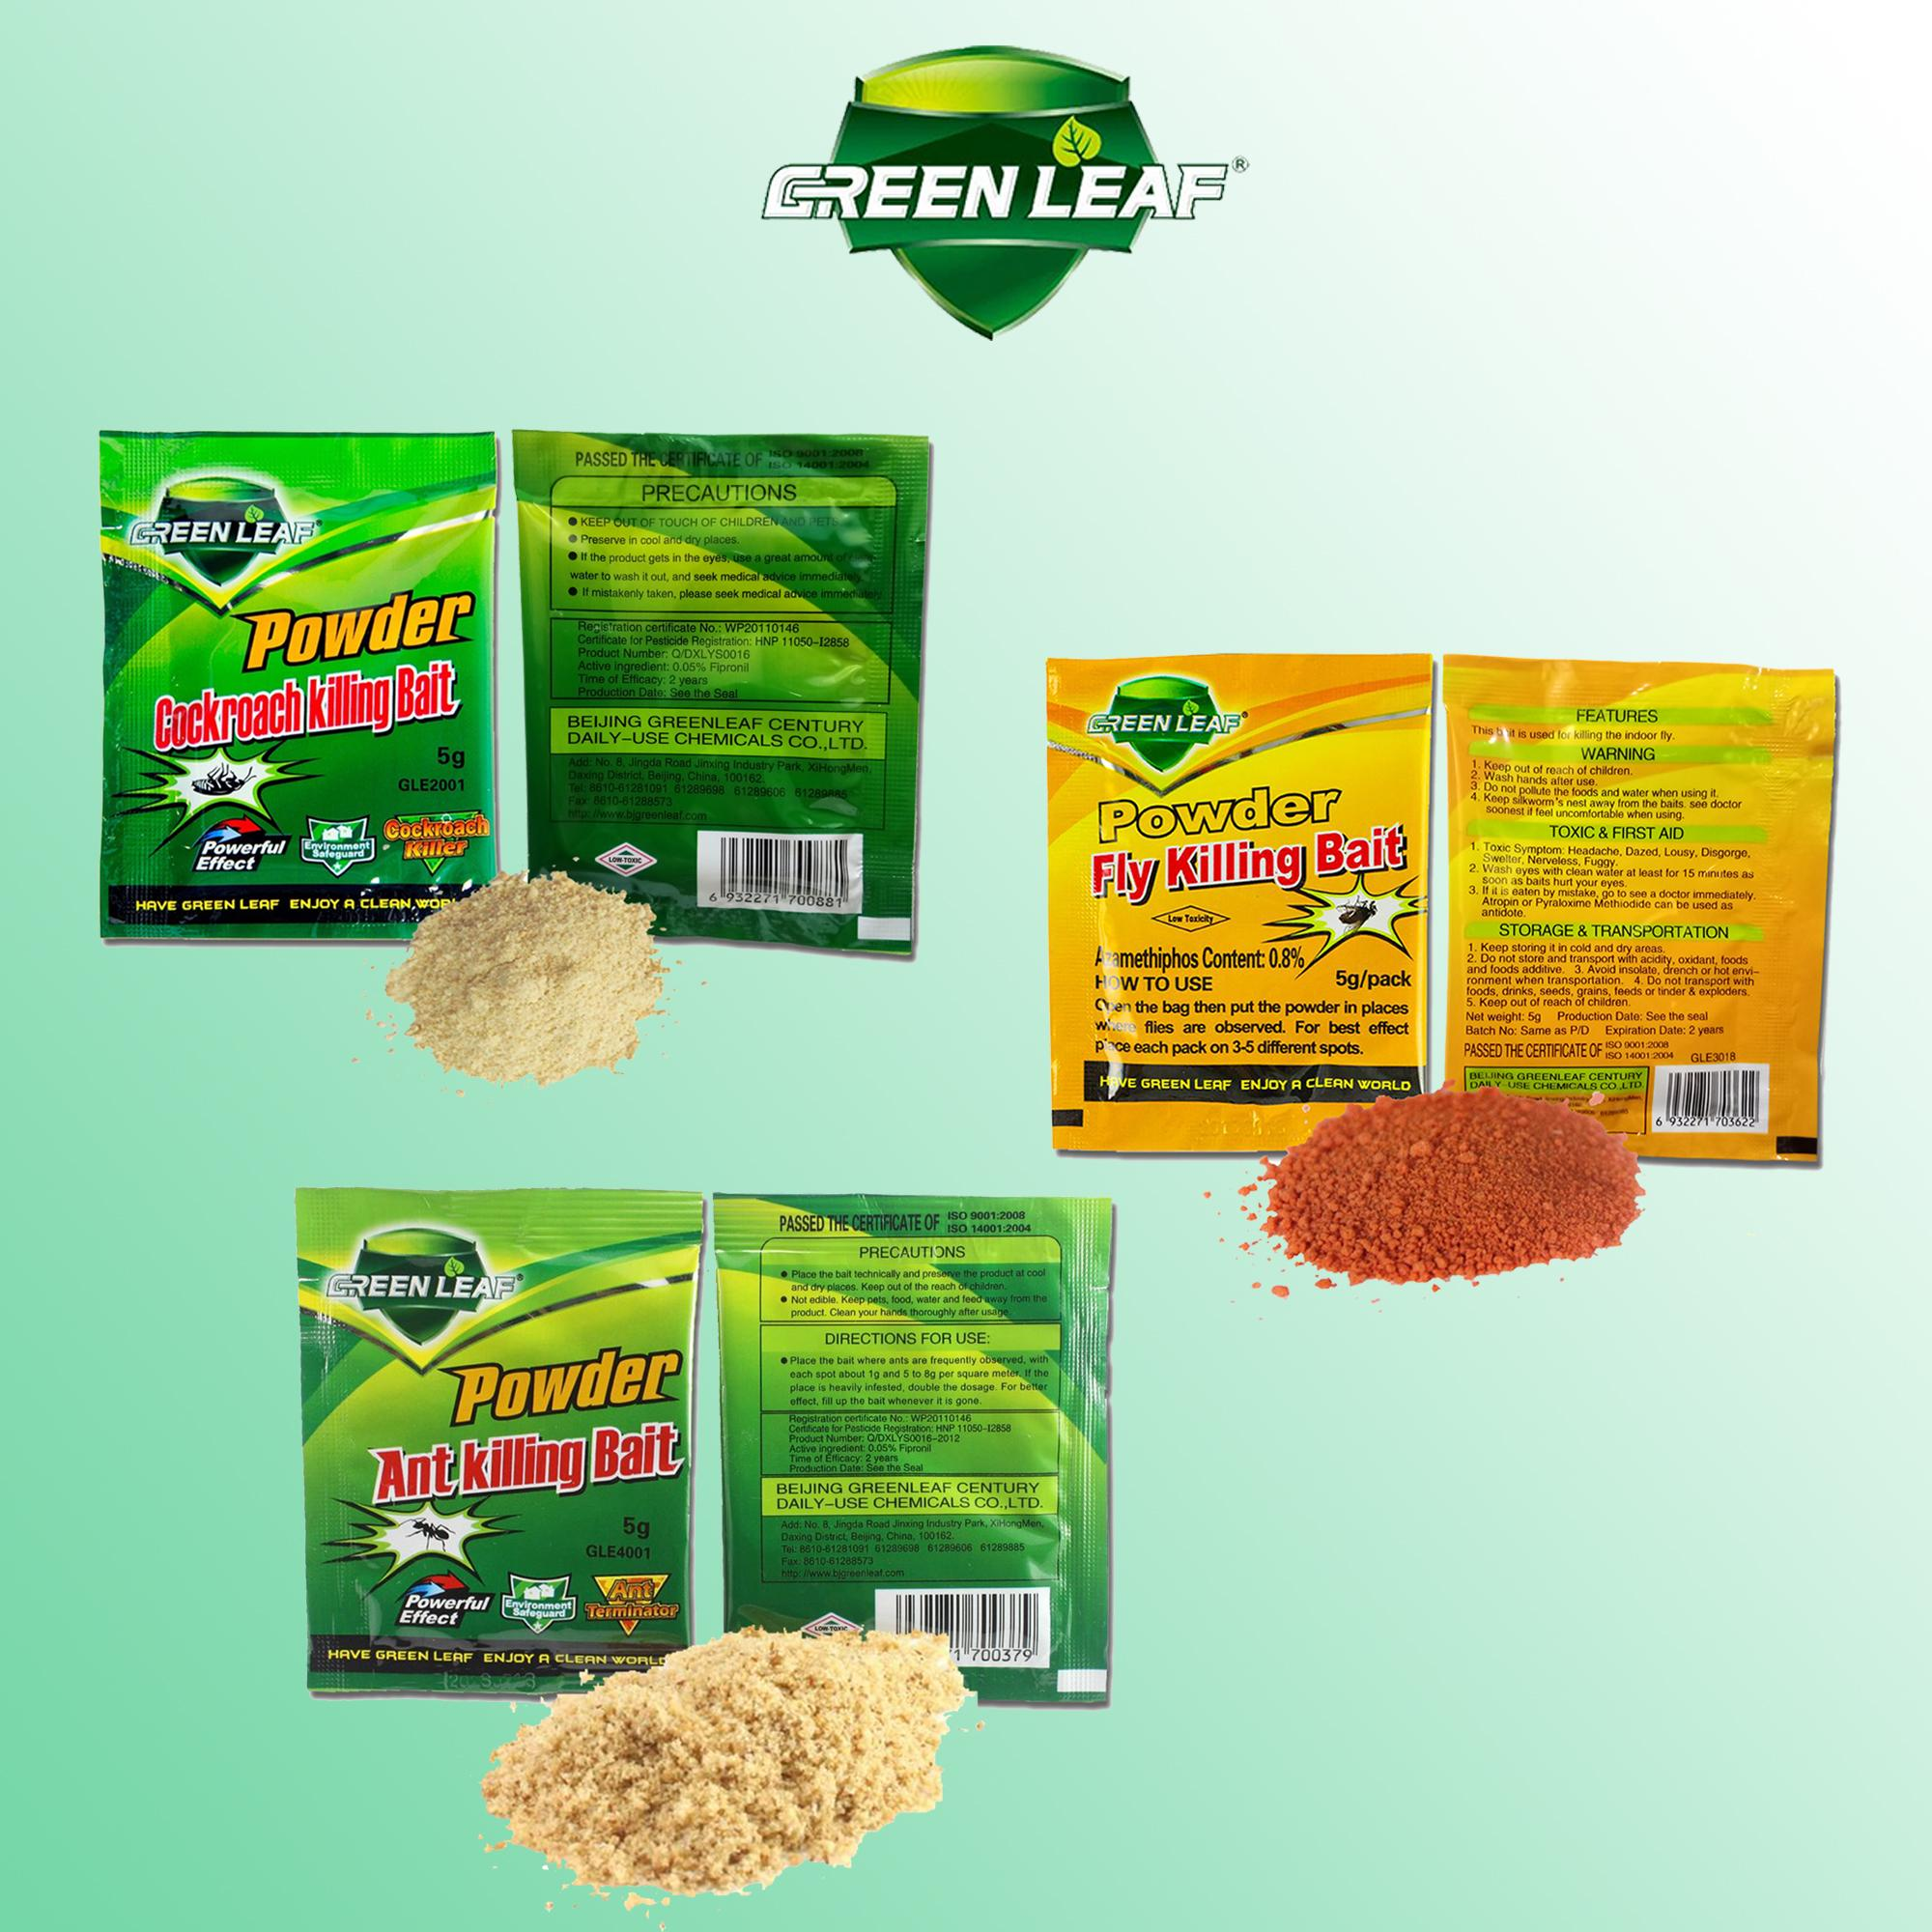 Effective Green Leaf Powder Cockroach, Ant, Fly Killing Bait-- Pests, insect and bugs killer insecticides pesticides, trap (1 PIECE of your choice) image on snachetto.com